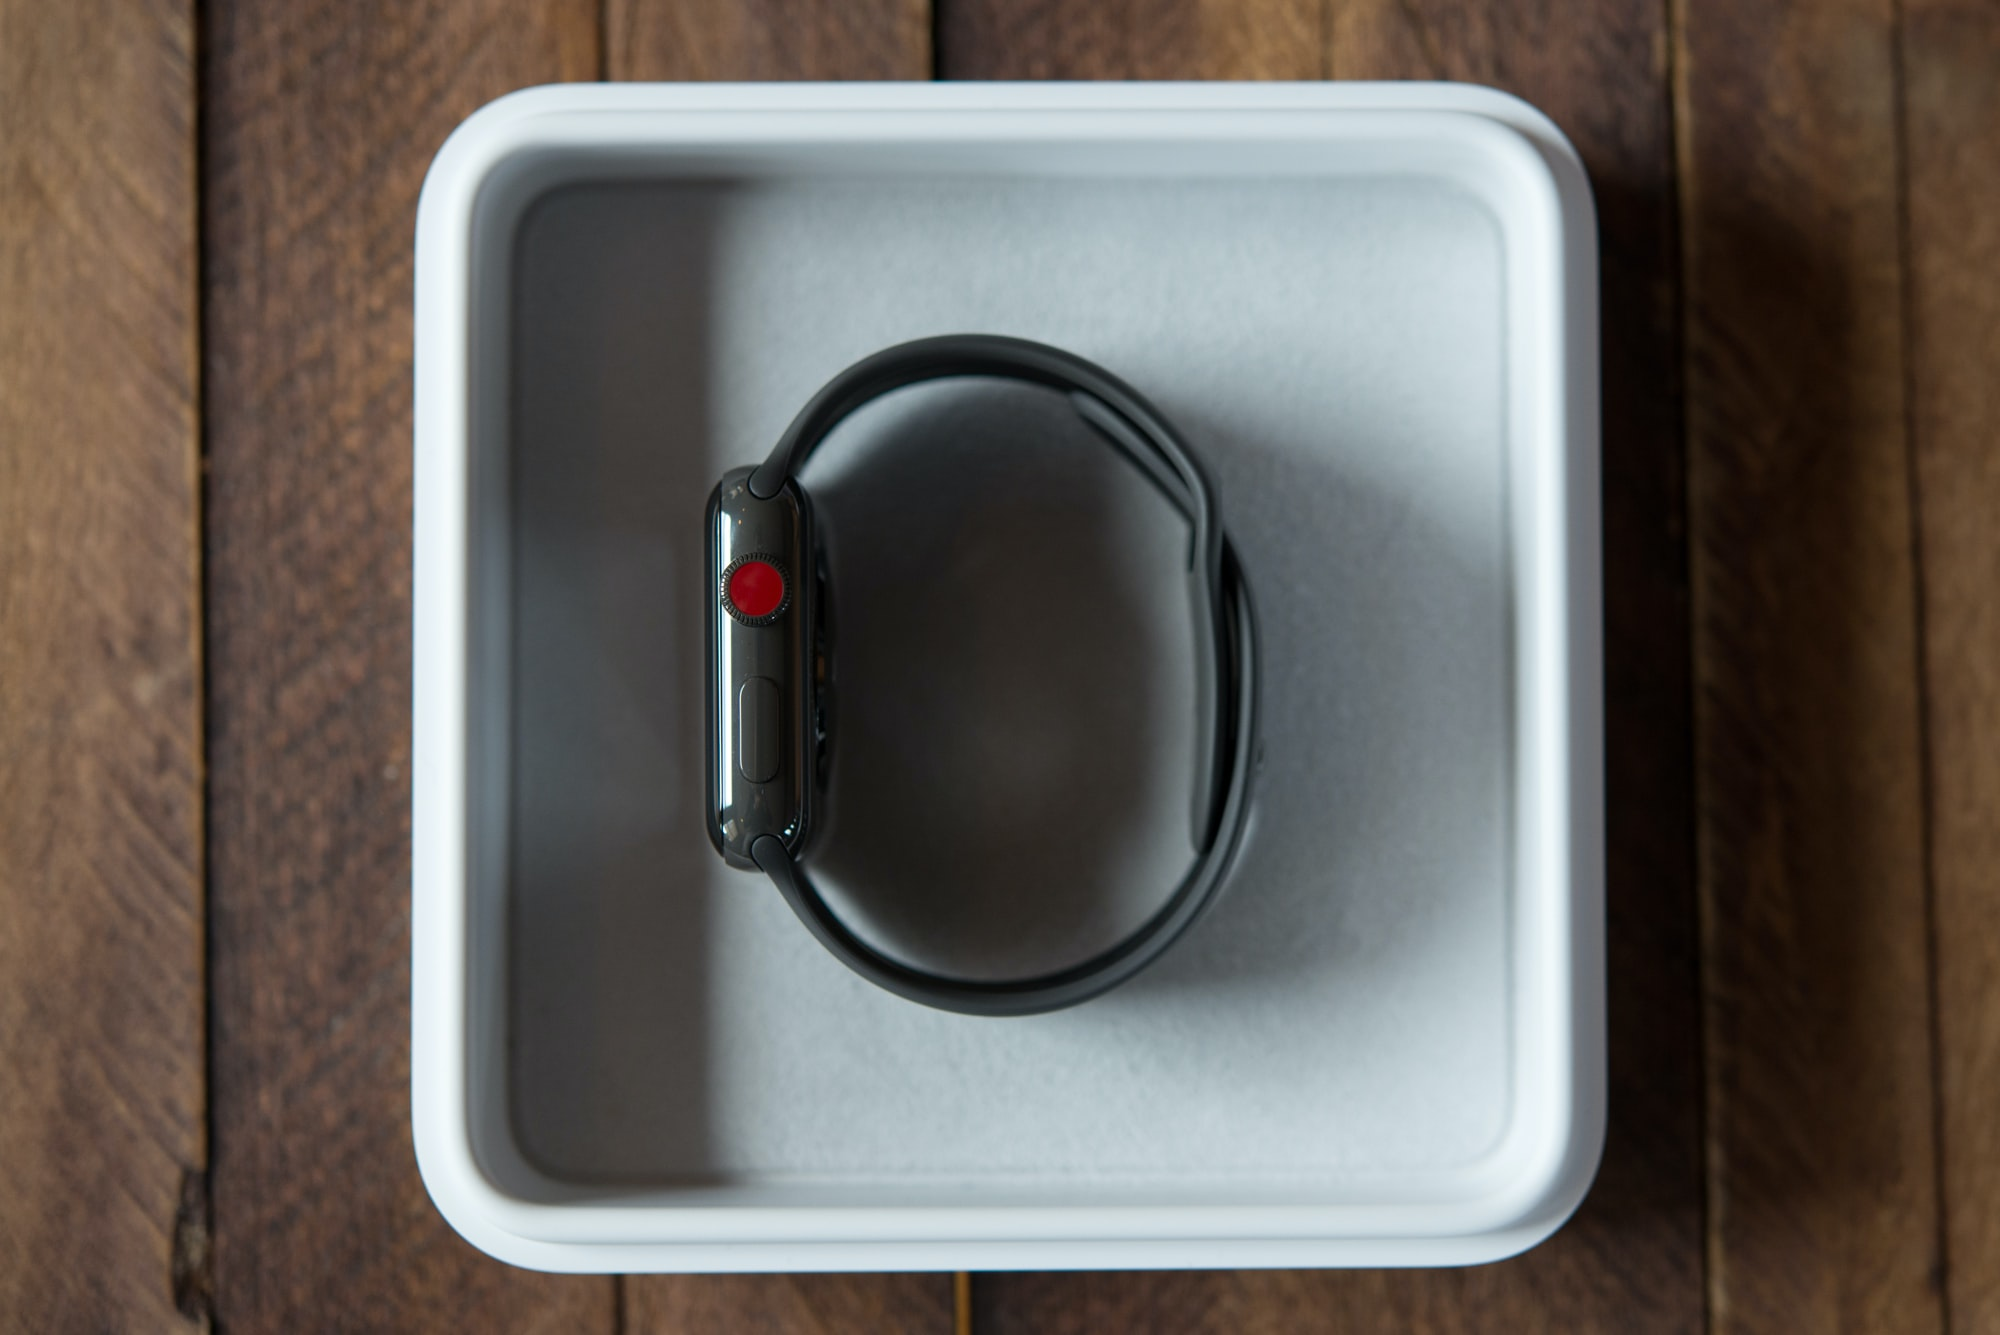 A Week On The Wrist: The Apple Watch Series 3 Edition A Week On The Wrist: The Apple Watch Series 3 Edition AppleWatchSeries3Edition 9